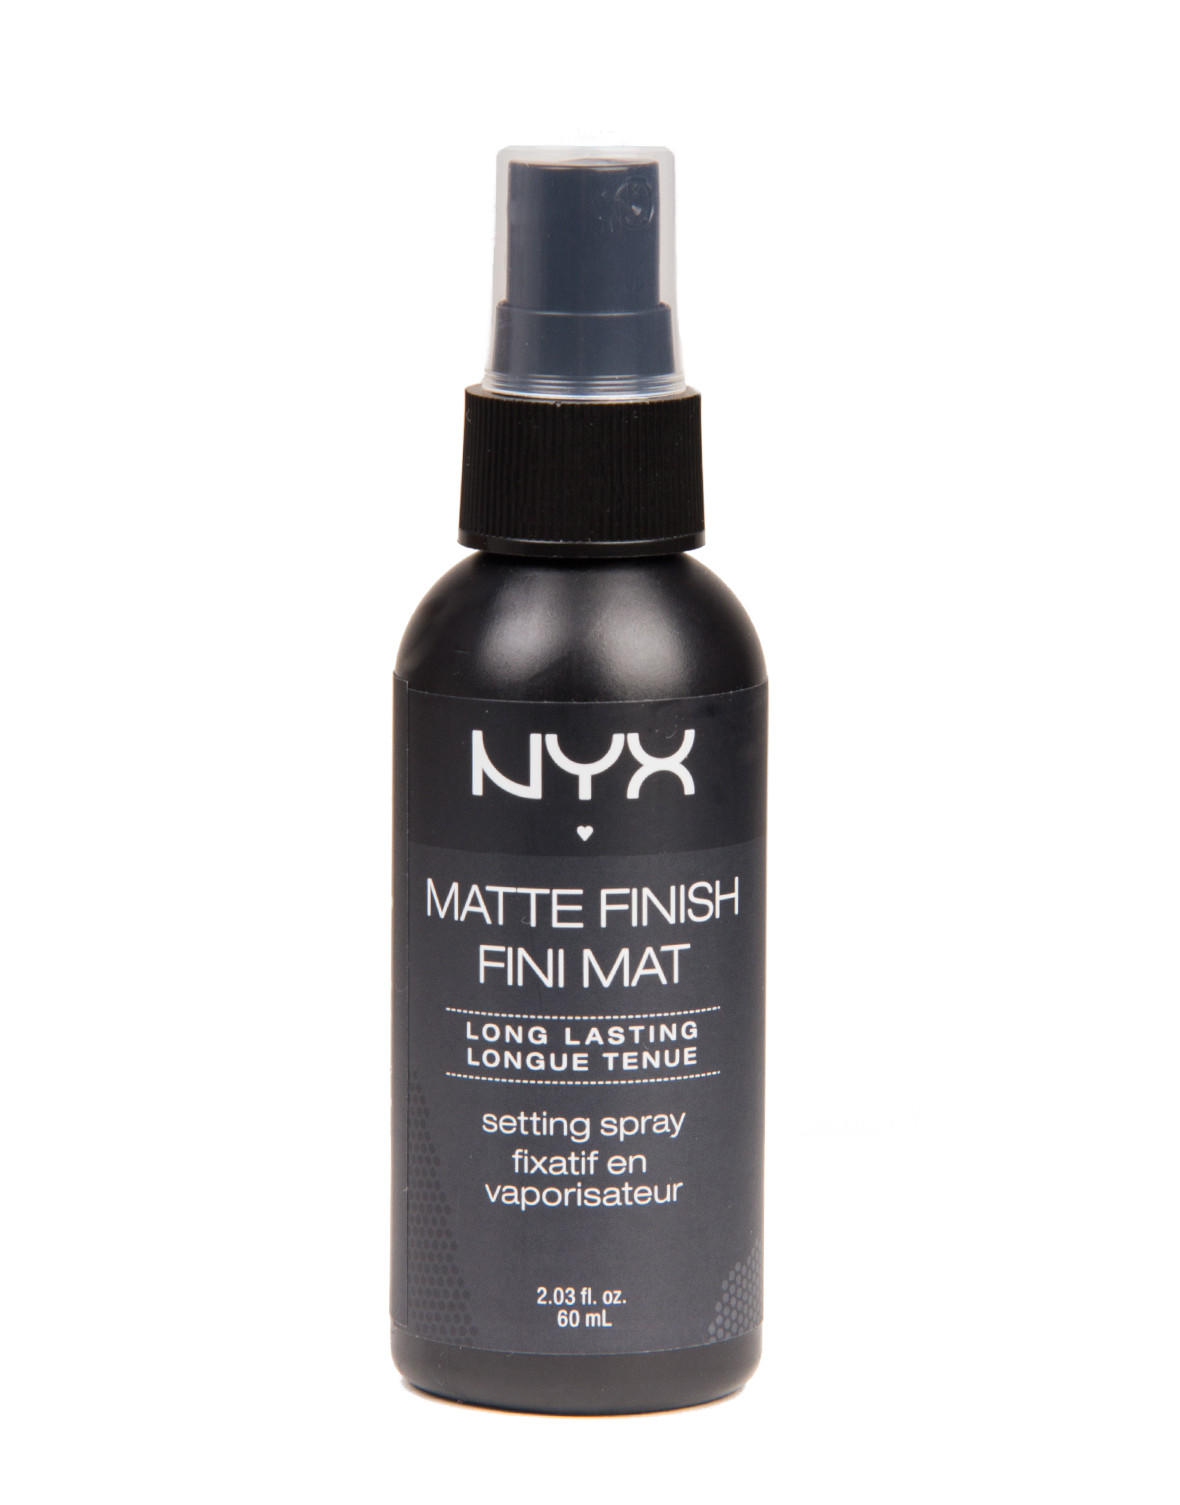 Nyx matte finish setting spray from 2020ave beauty